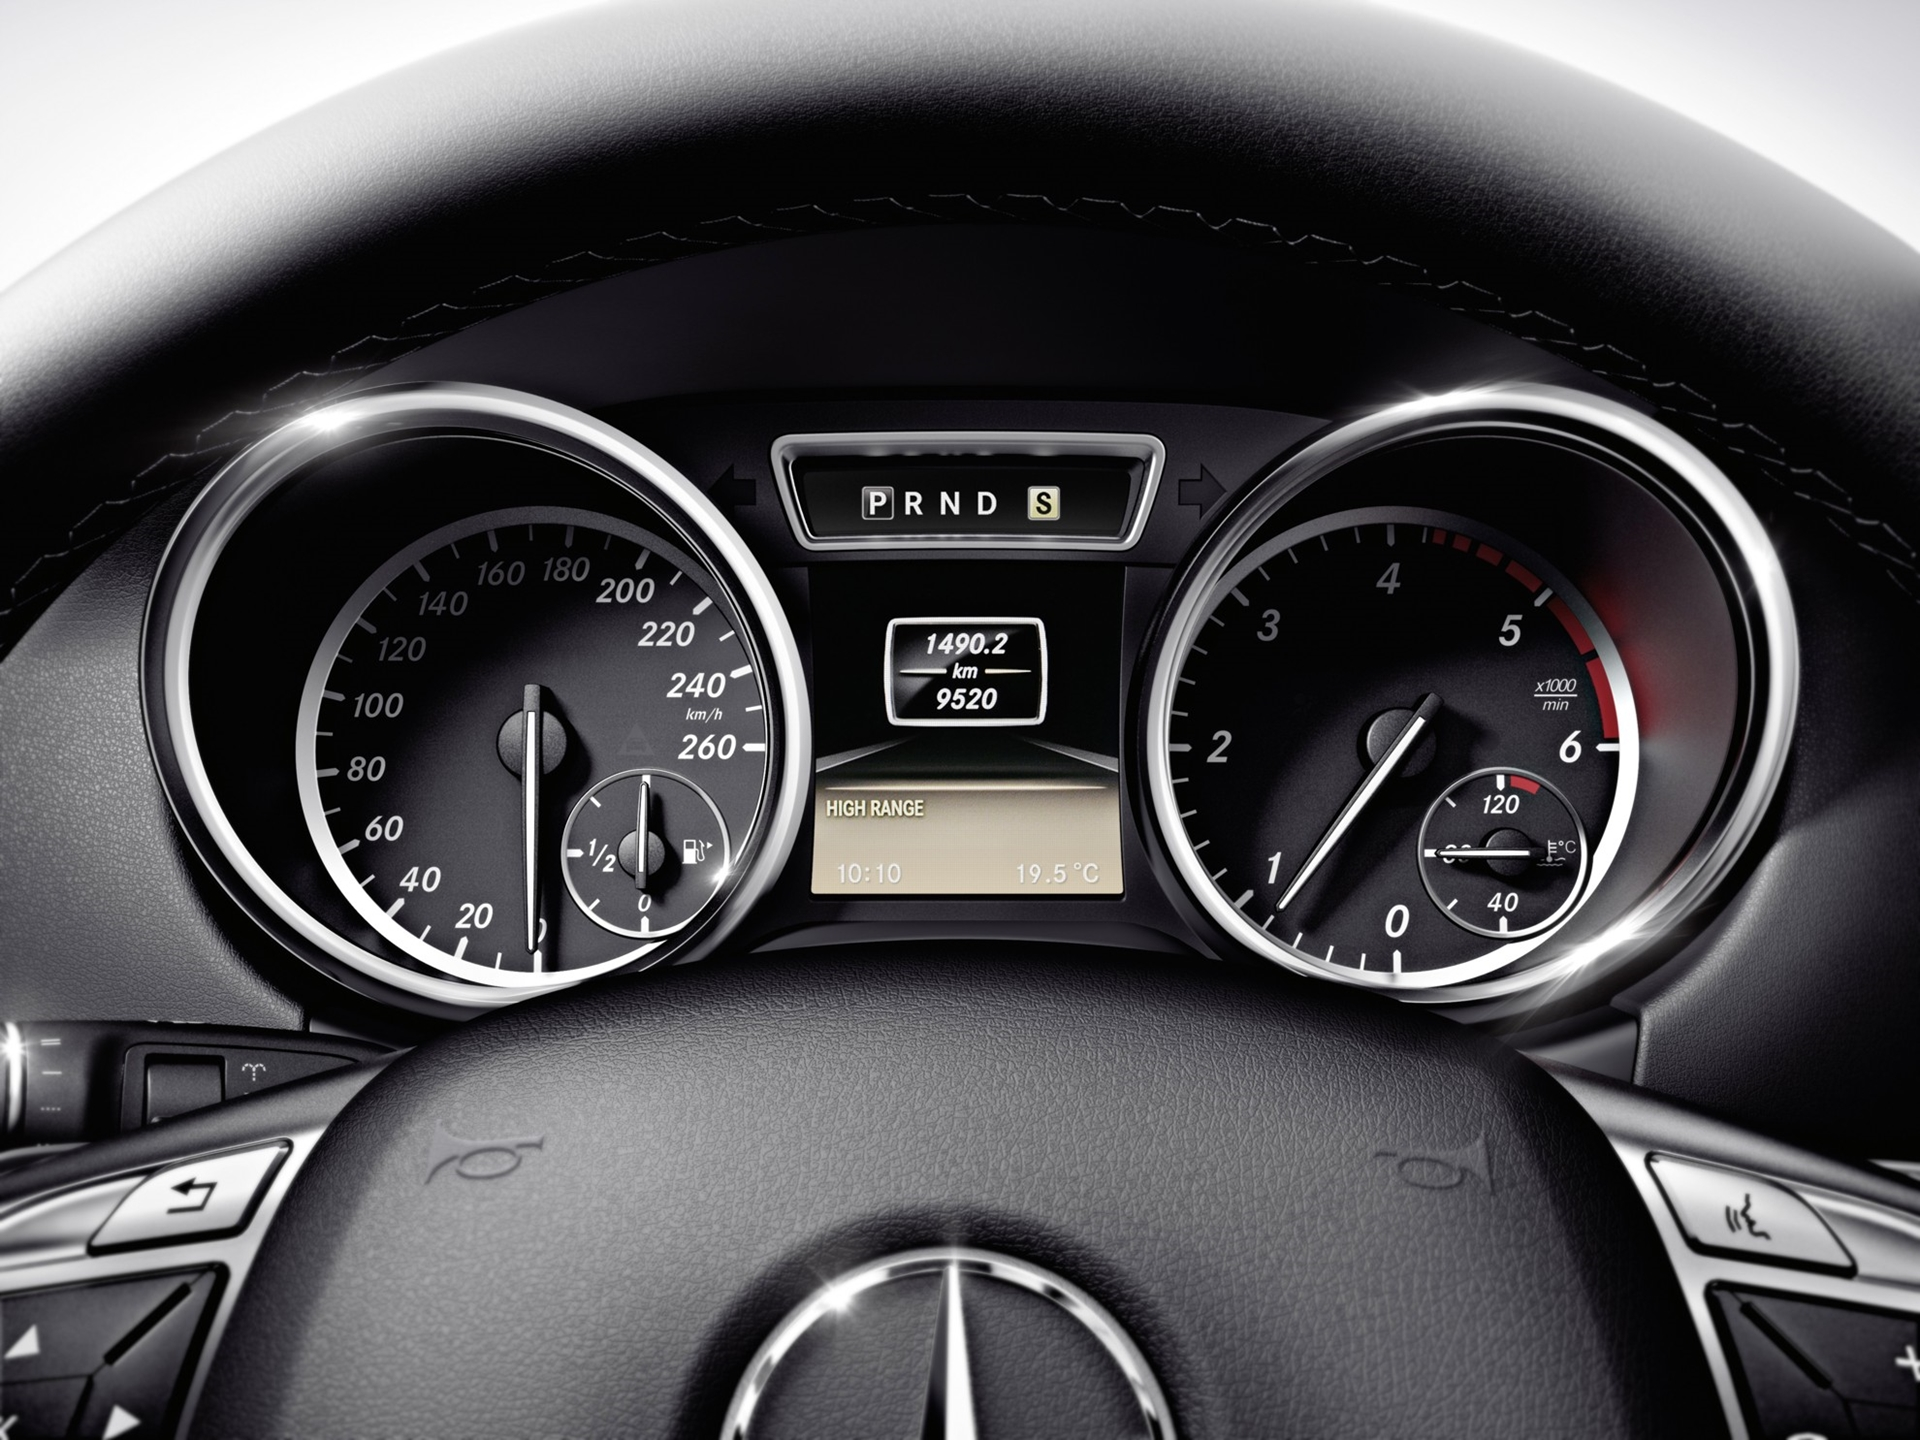 Mercedes-Benz G-Class Dashboard